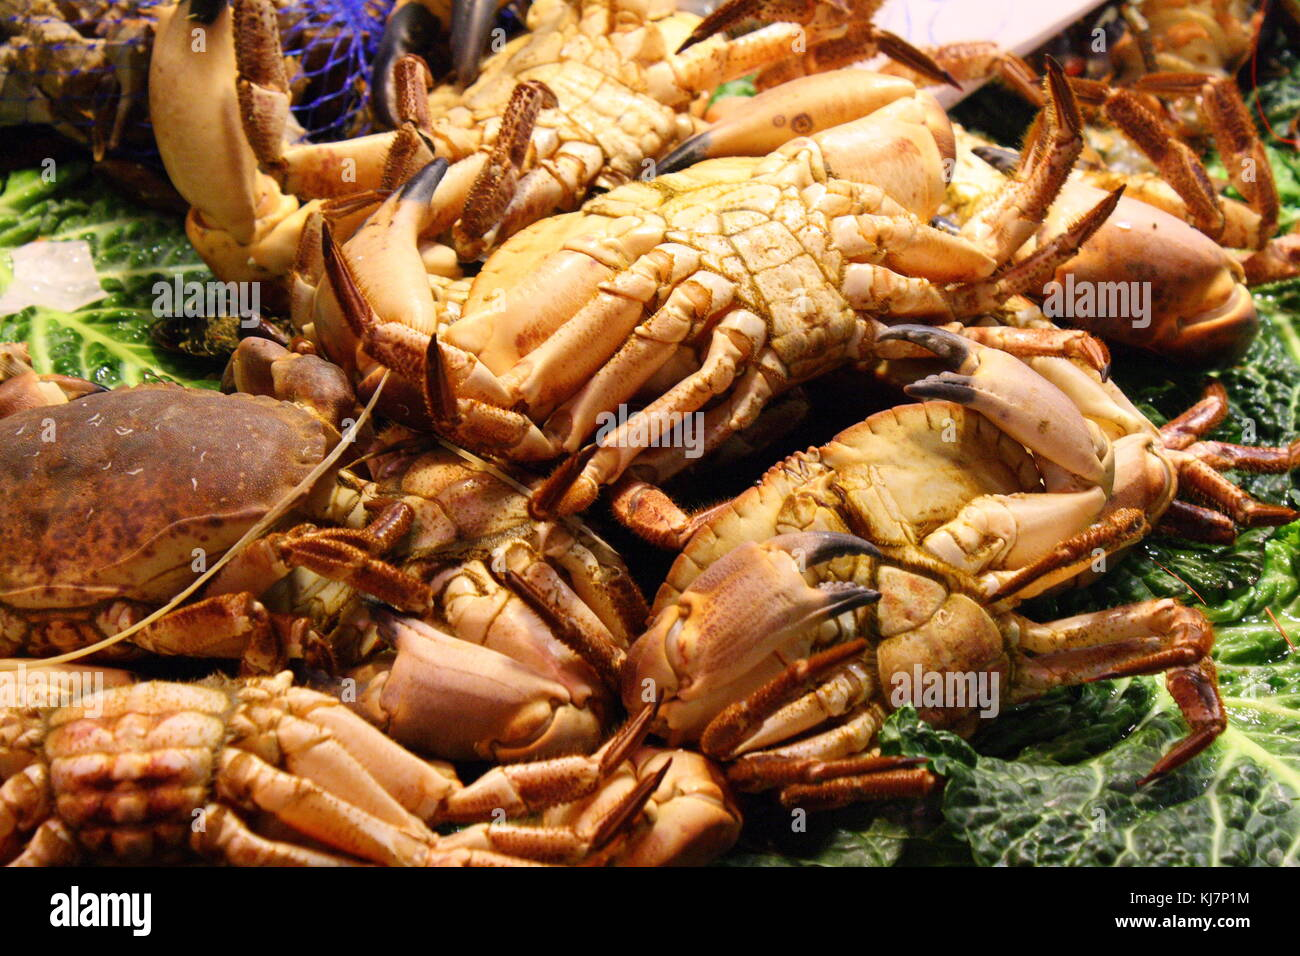 A closeup of crabs on display at the seaside fish market. - Stock Image